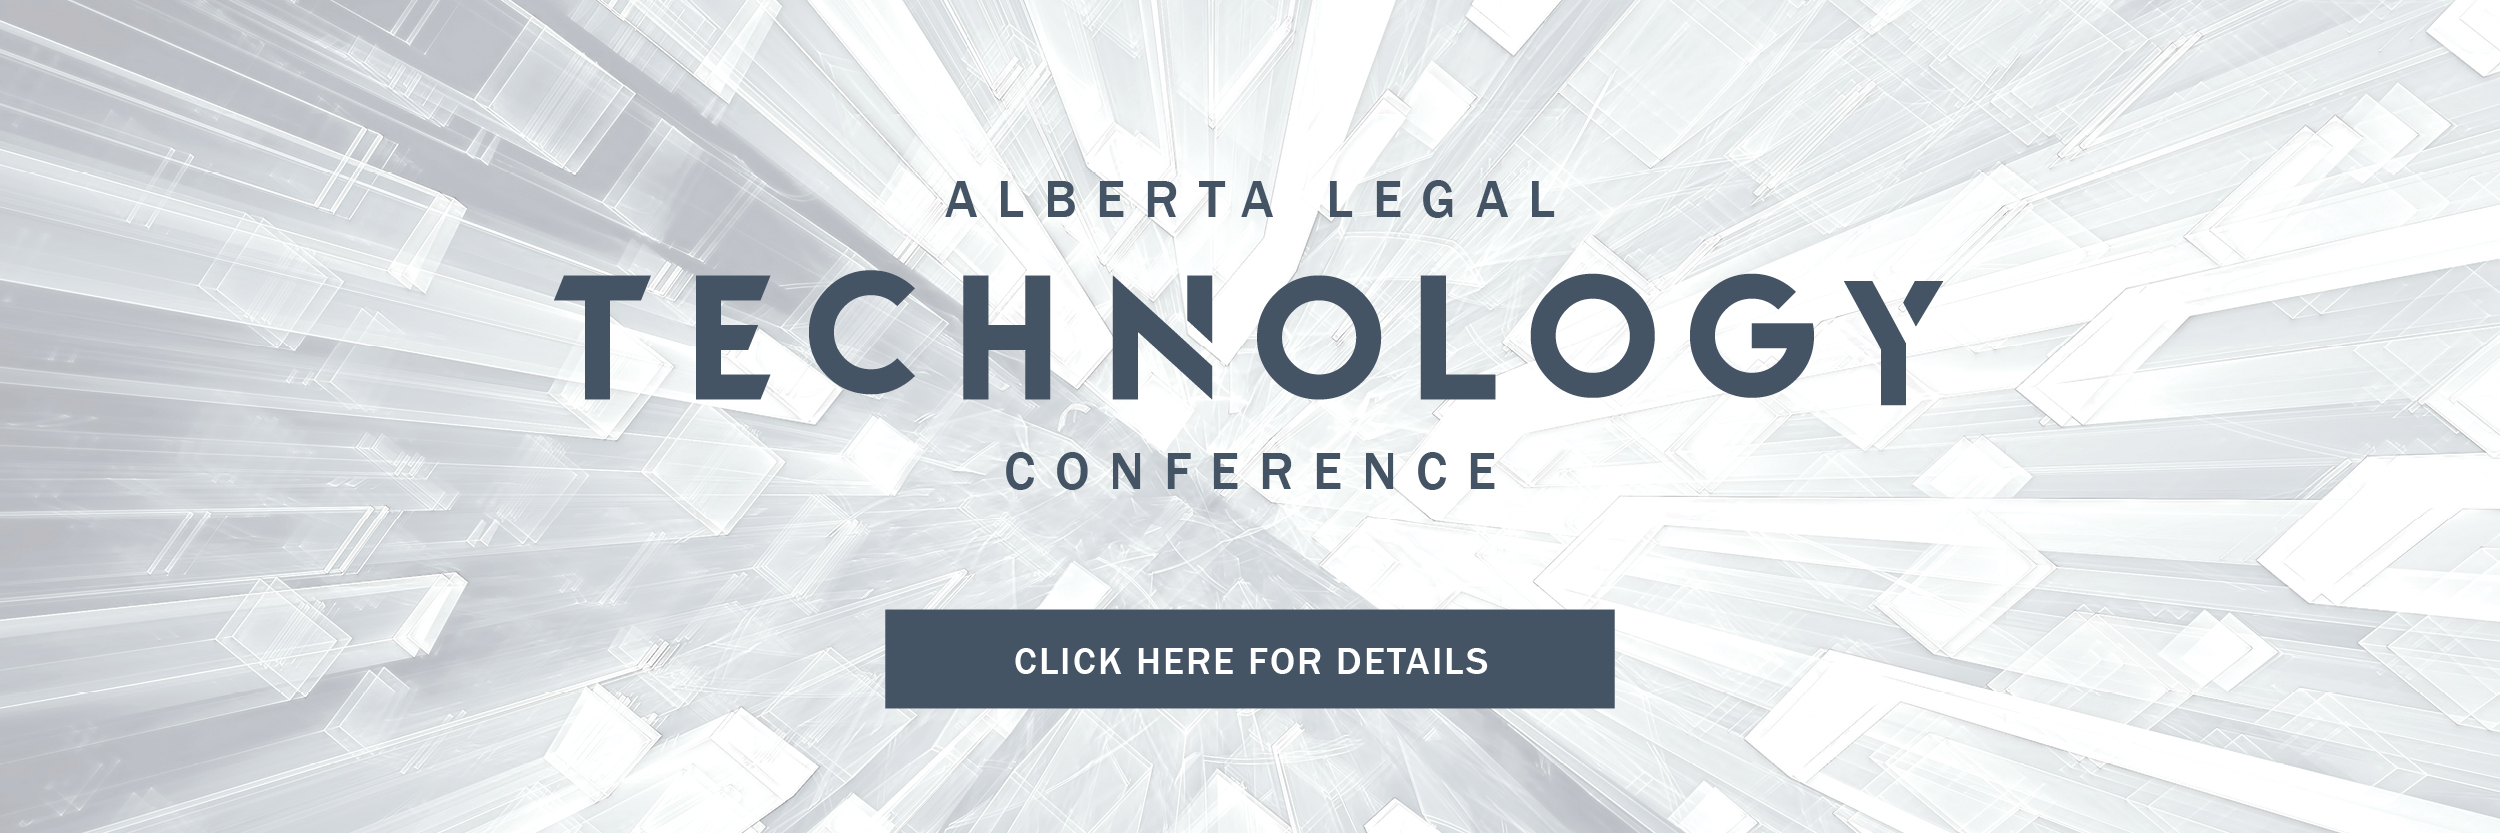 Legal Technology